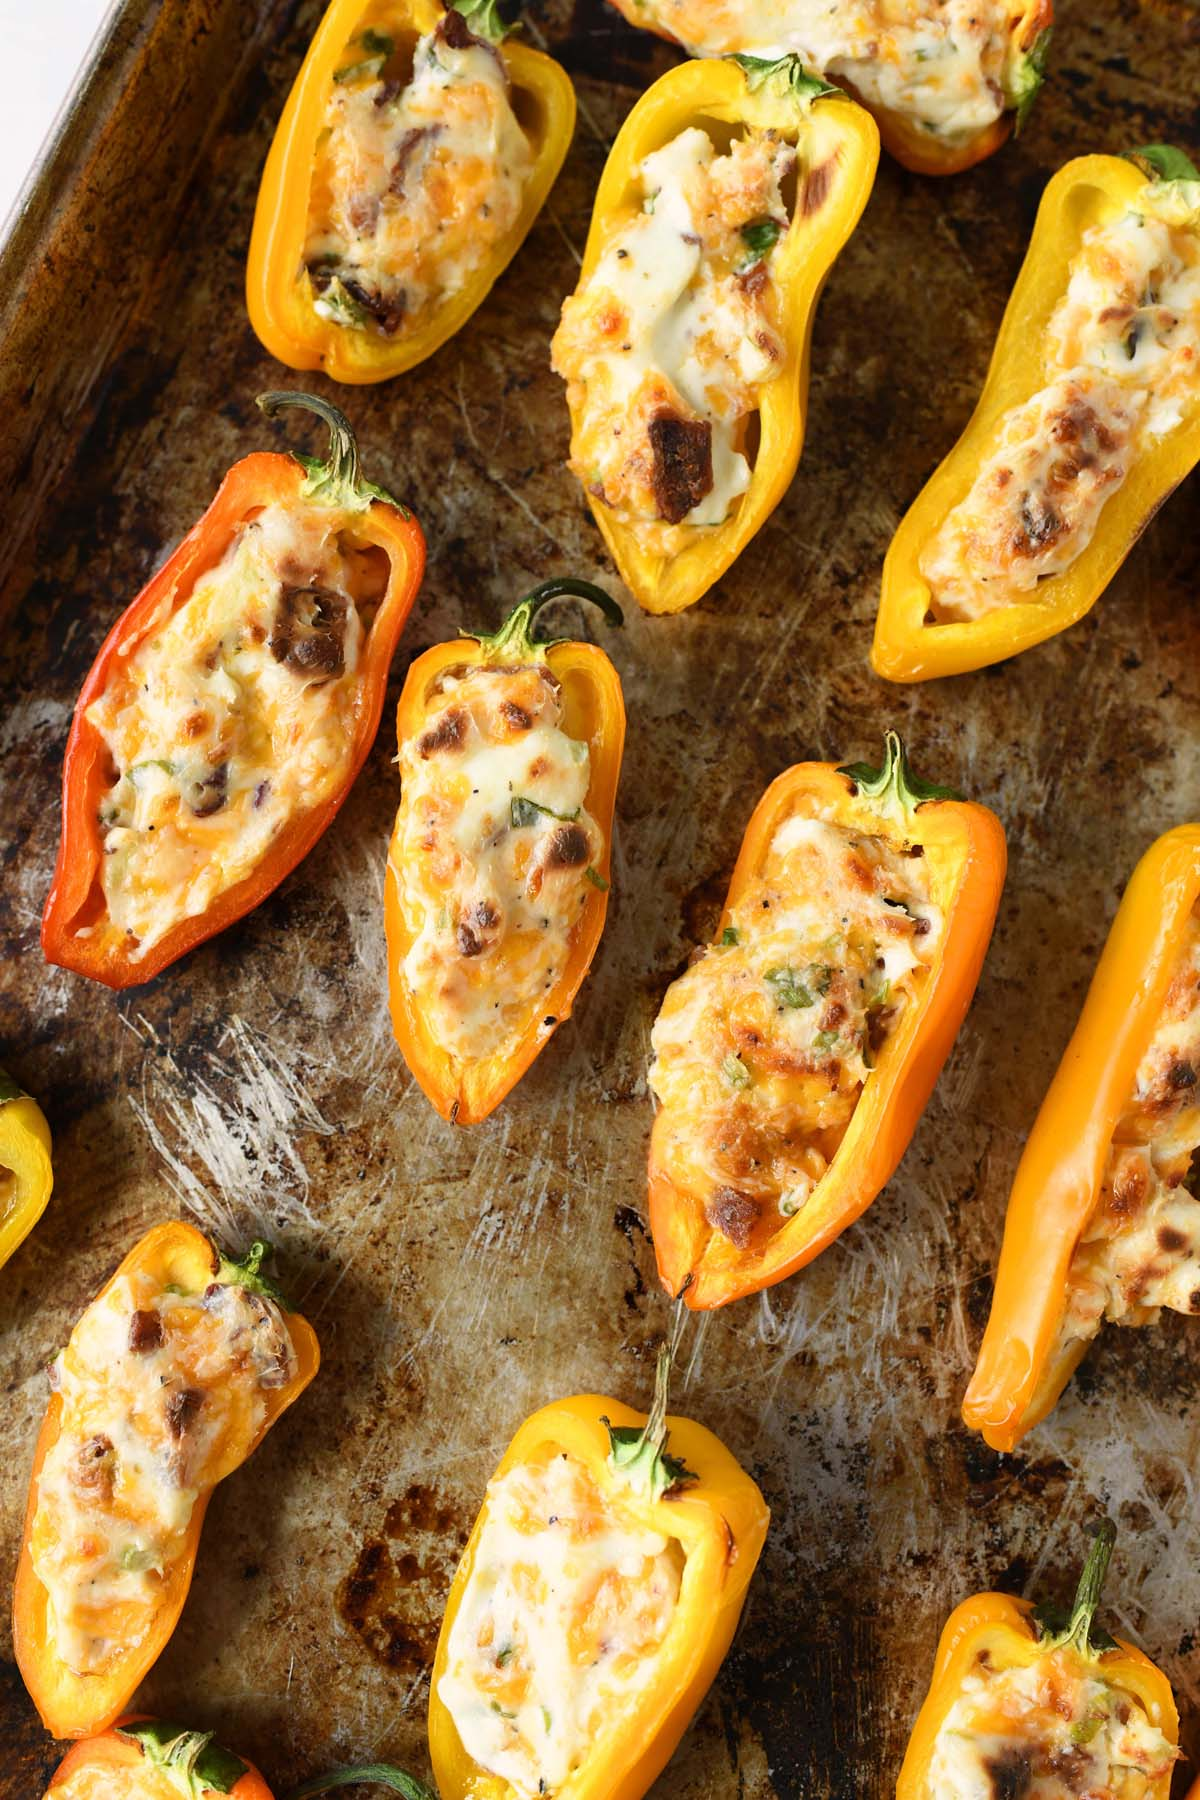 Bacon and cheese stuffed peppers on a baking sheet.